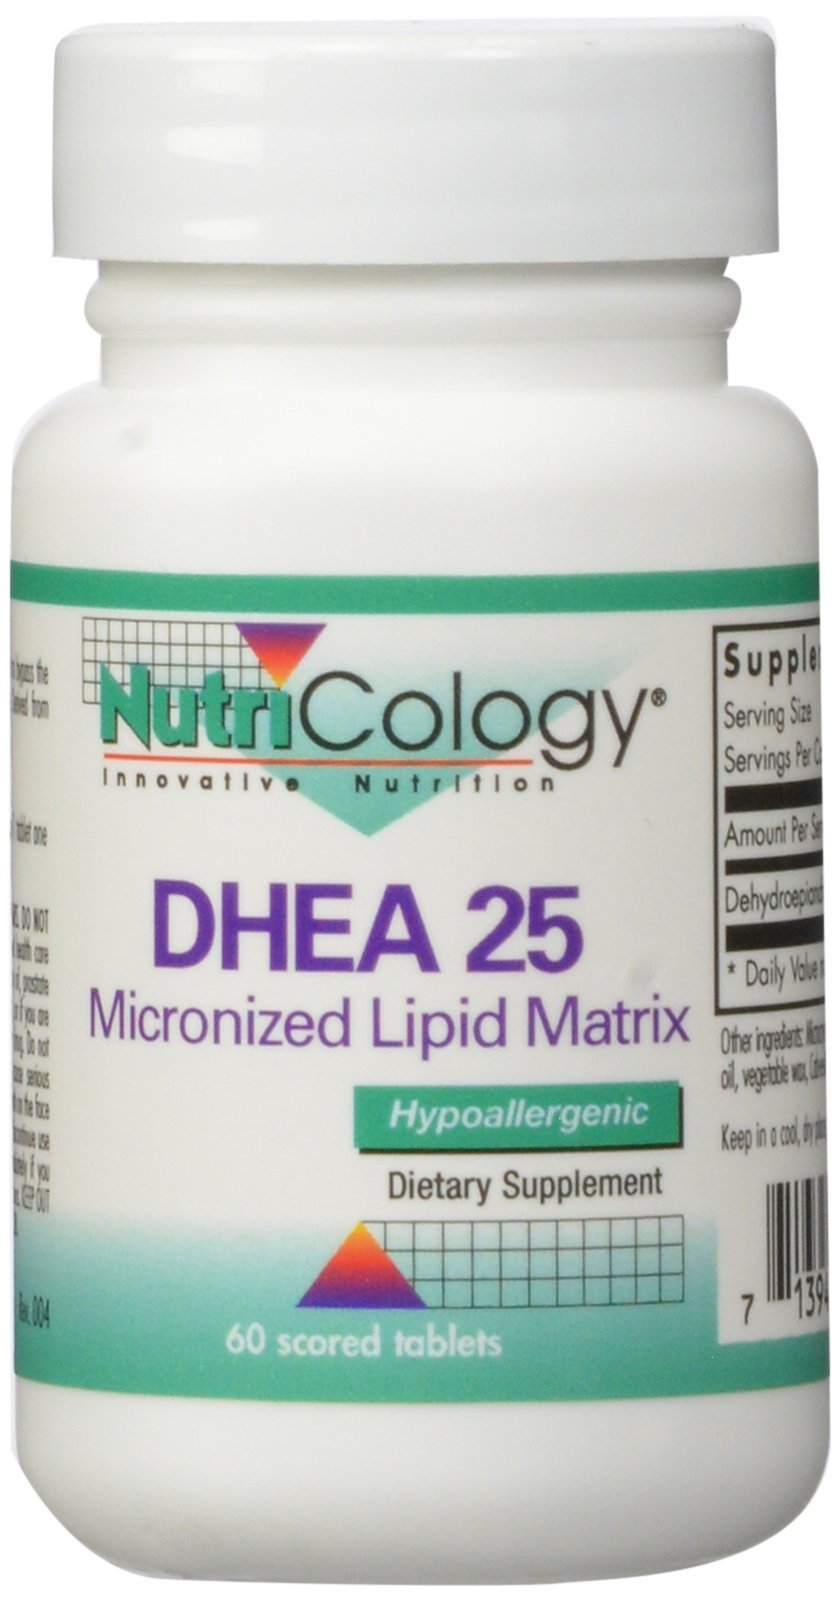 Nutricology Dhea 25 Mg Sustained Release Tablets, 60 Count